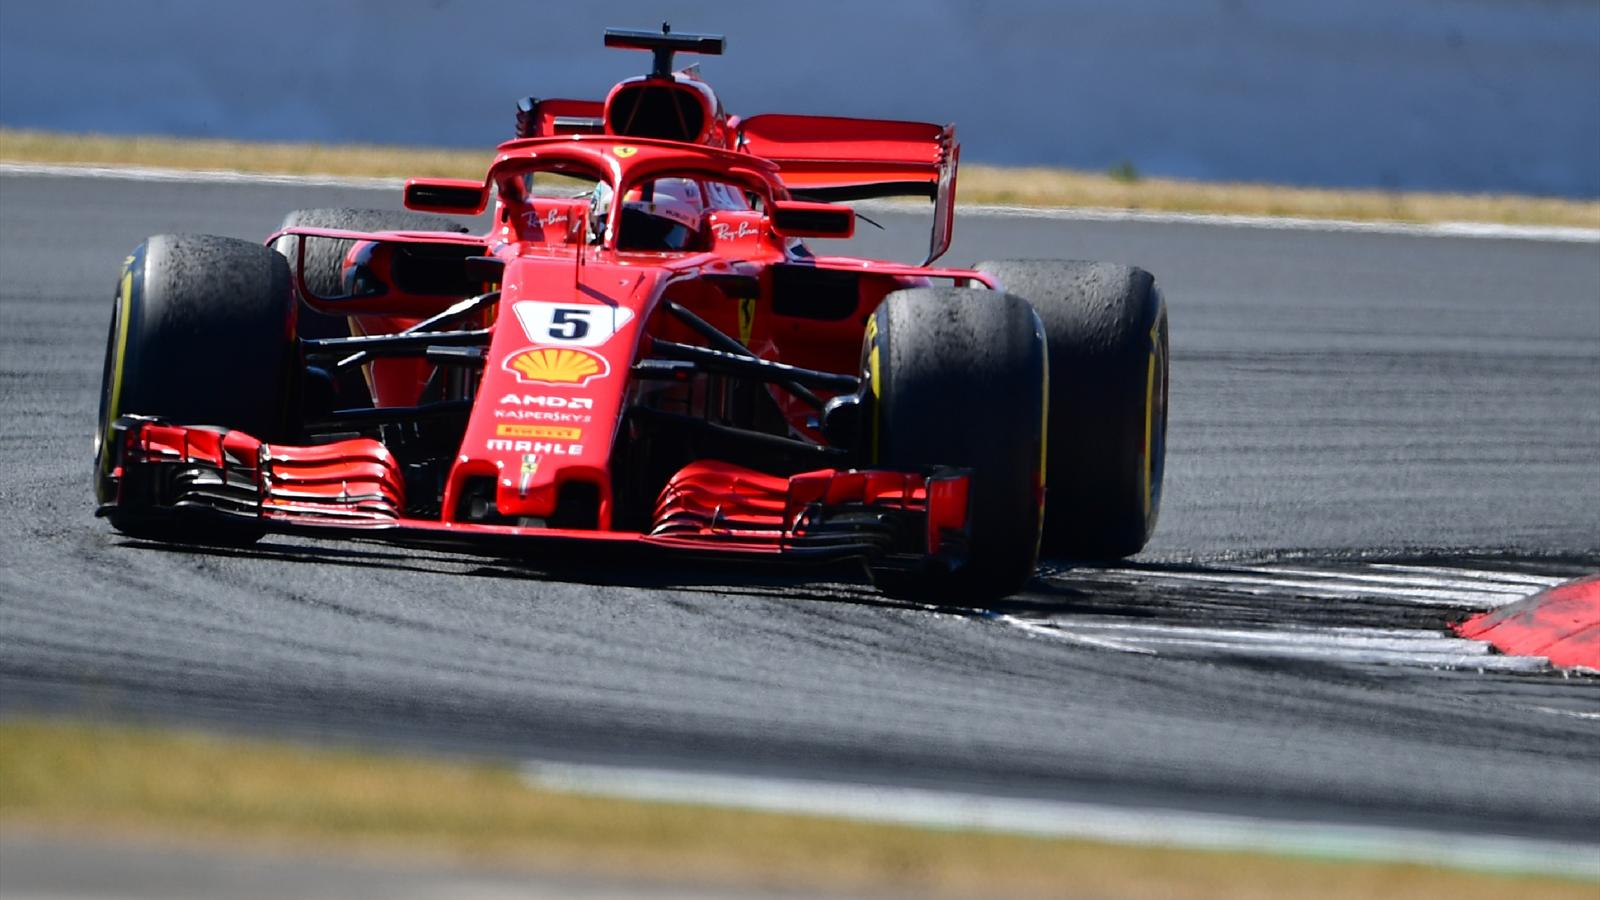 grand prix de grande bretagne sebastian vettel s 39 impose devant lewis hamilton et kimi. Black Bedroom Furniture Sets. Home Design Ideas